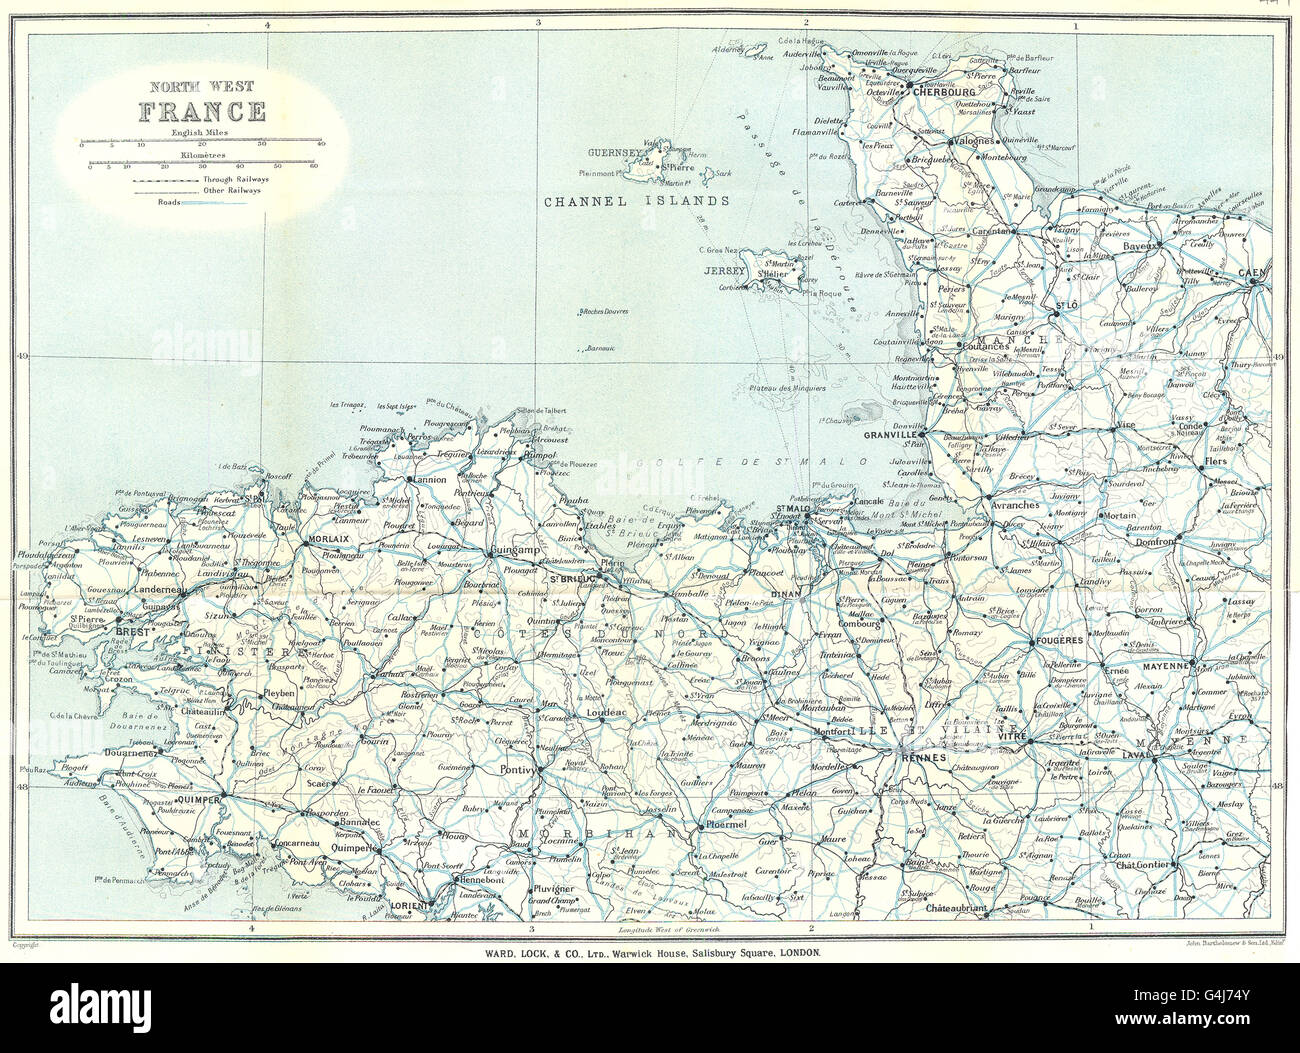 Map Of Northwest France.North West France Normandy Brittany Channel Islands Ward Lock